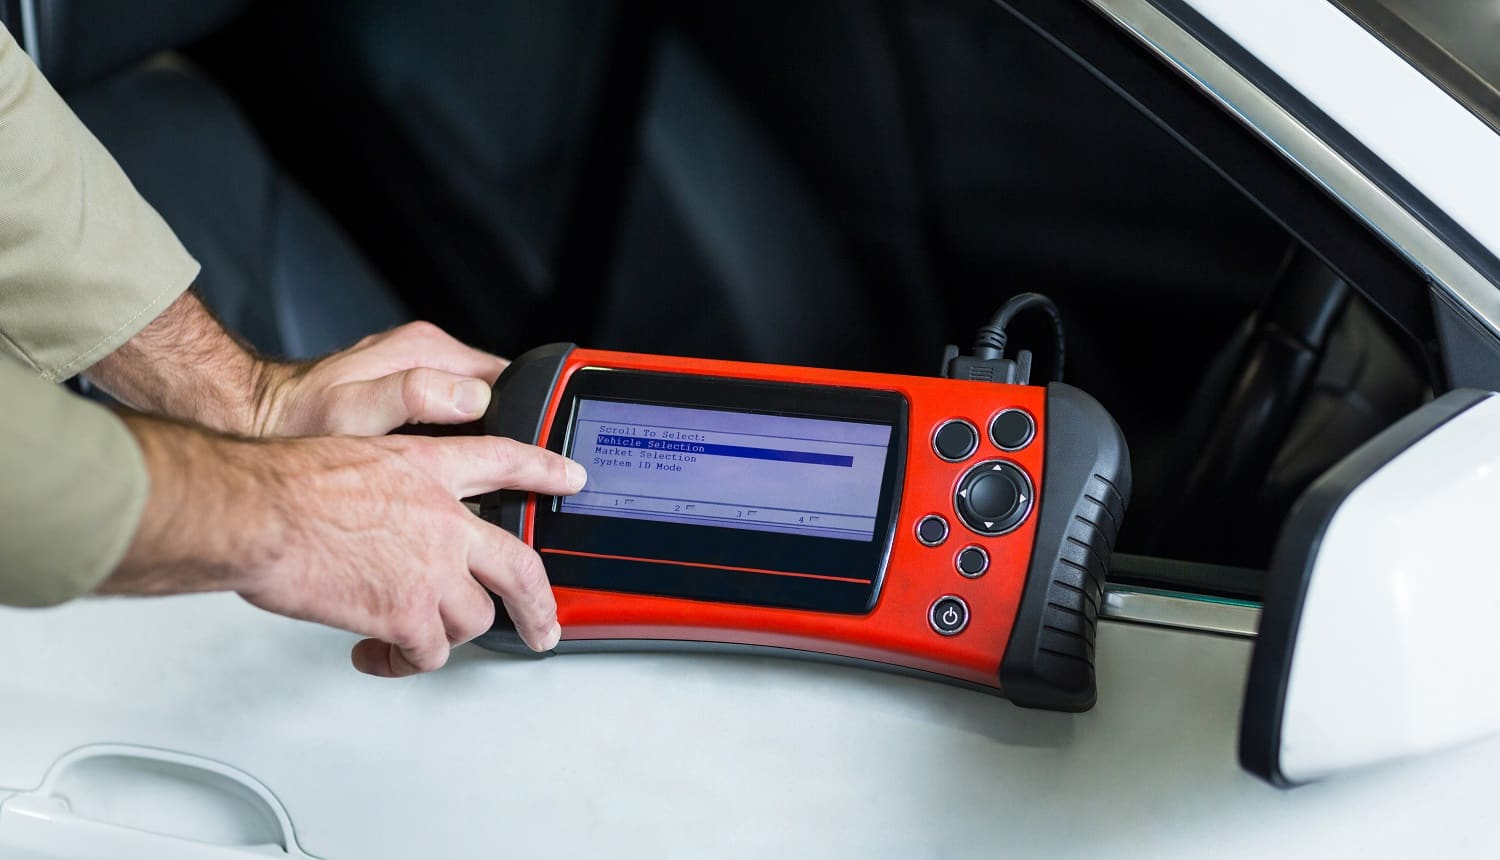 Hands of mechanic using a diagnostic tool in repair garage